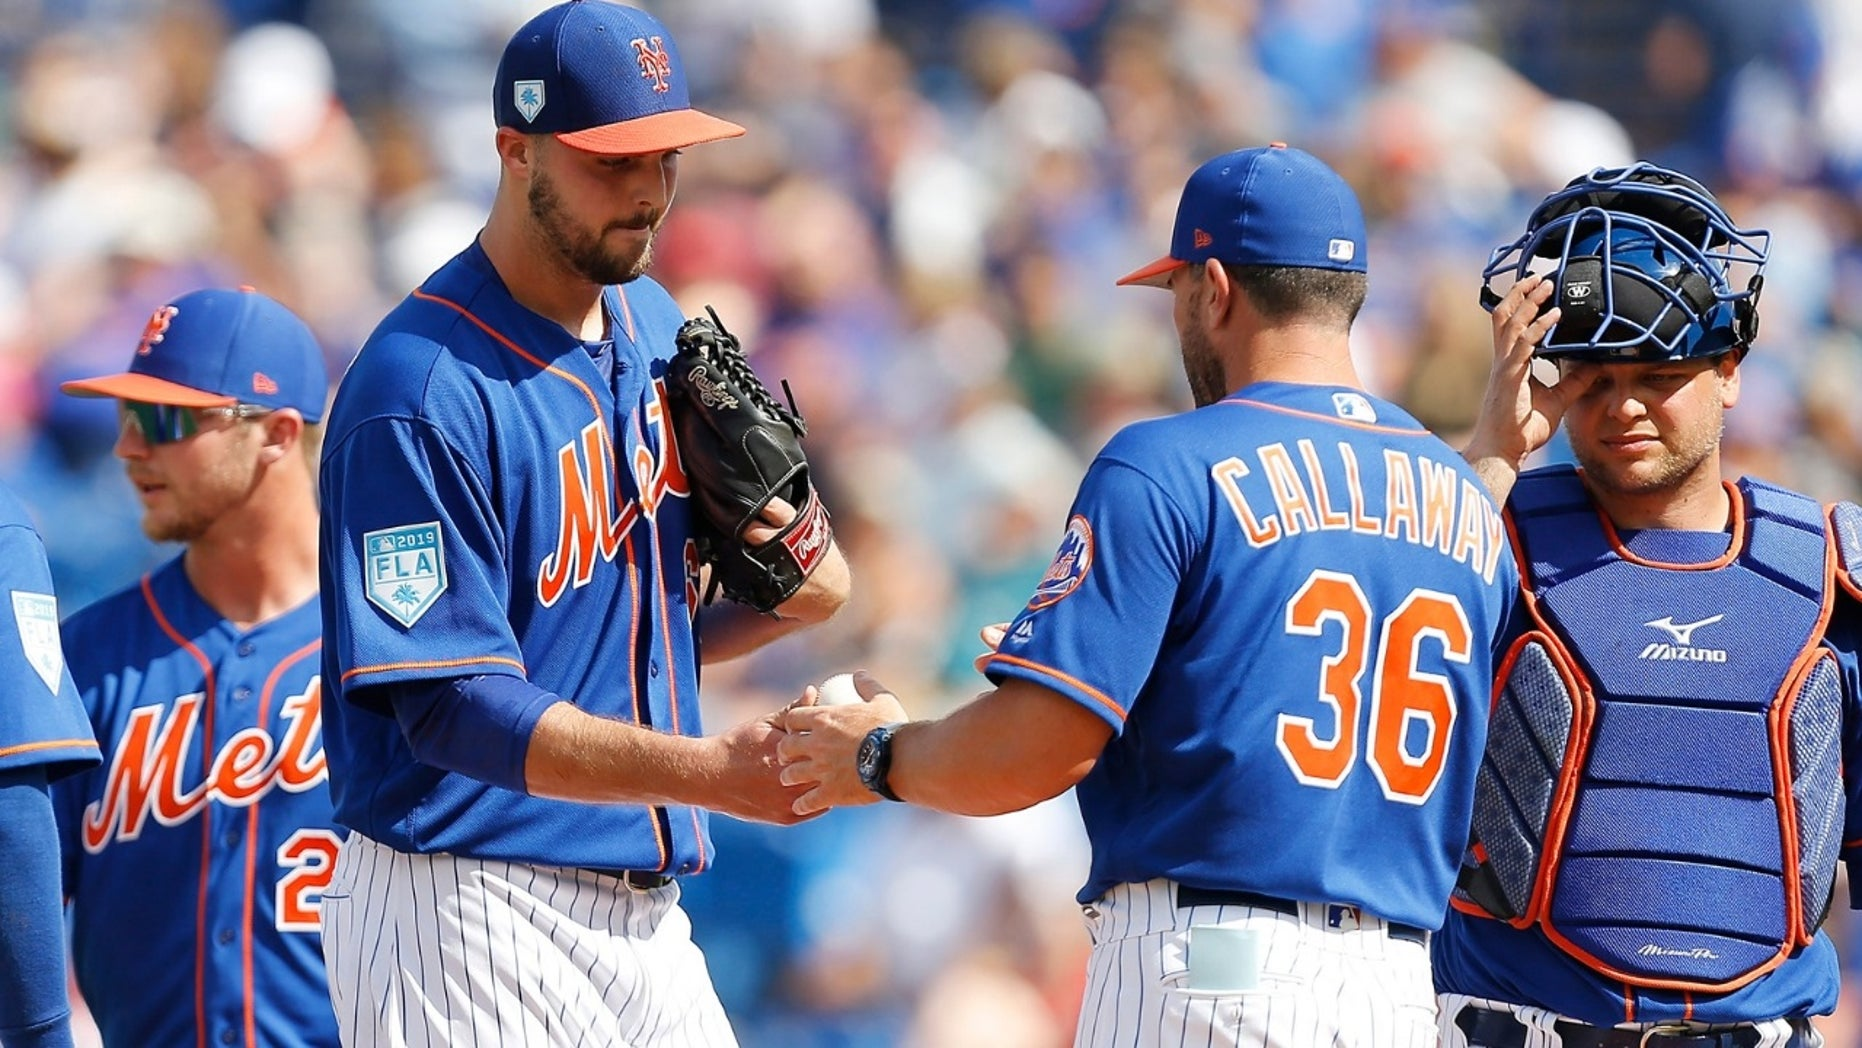 A plane carrying the New York Mets was bound to take off to Syracuse from Florida Monday but it was delayed for more than three hours, reports stated.